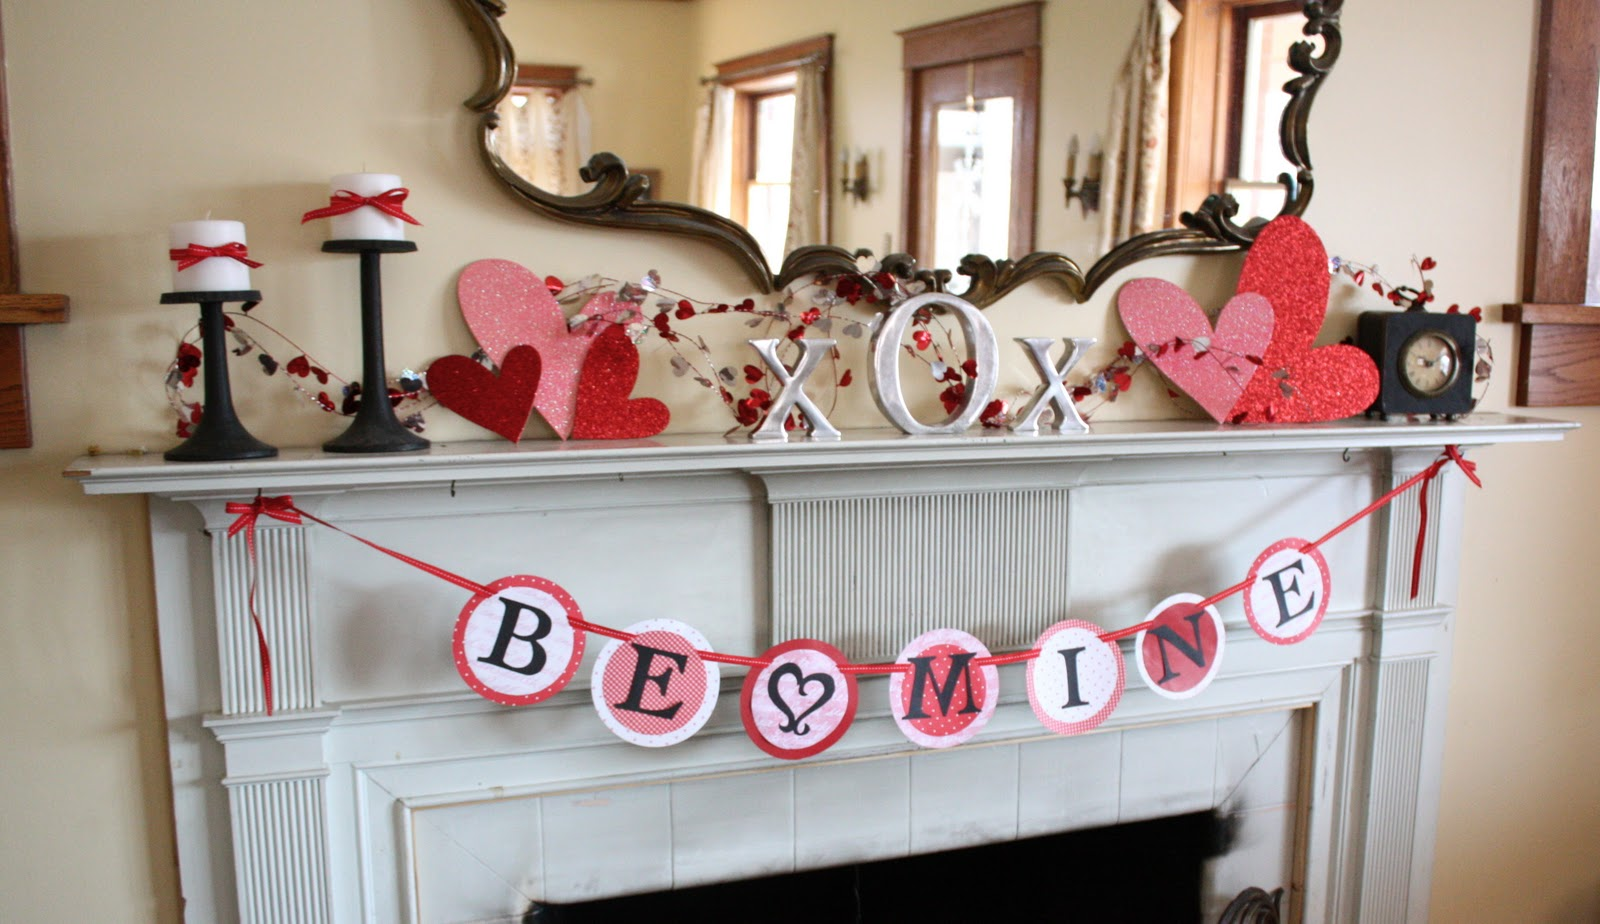 valentine 39 s day decorations ideas 2013 to decorate bedroom office and house valentines day. Black Bedroom Furniture Sets. Home Design Ideas